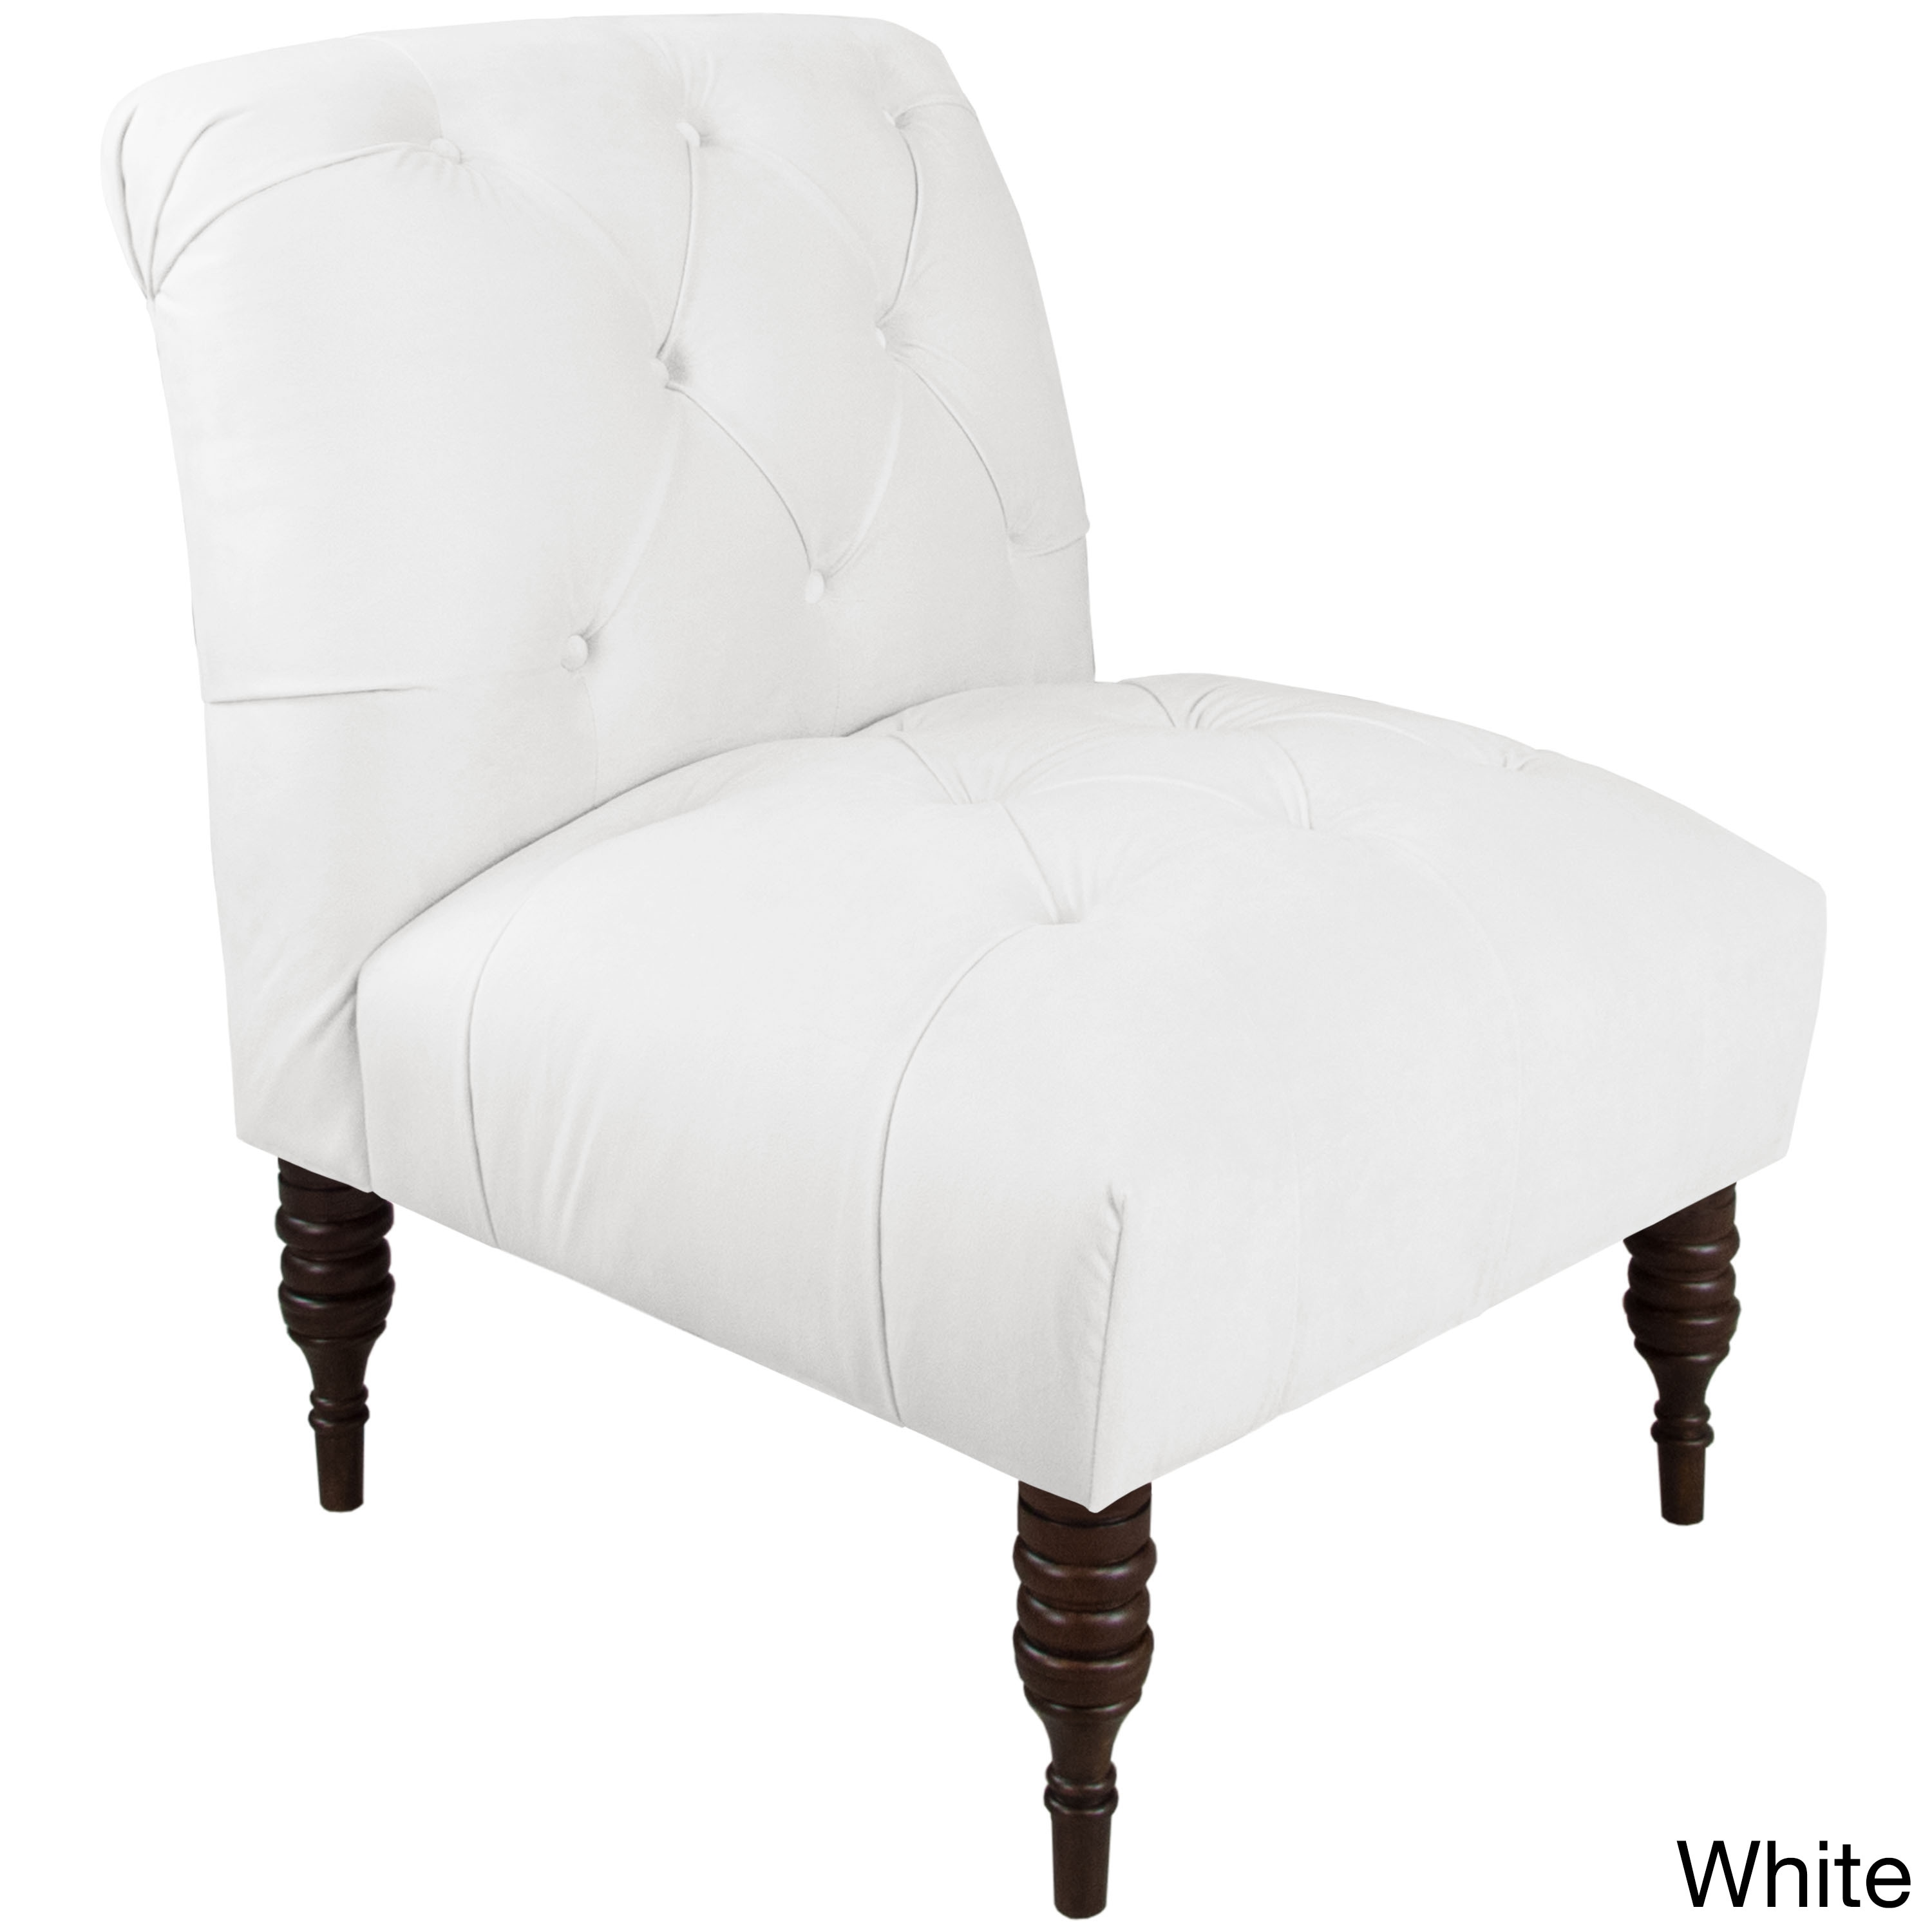 Skyline Furniture Velvet Fabric Modern Tufted Chair On Free Shipping Today 13489164